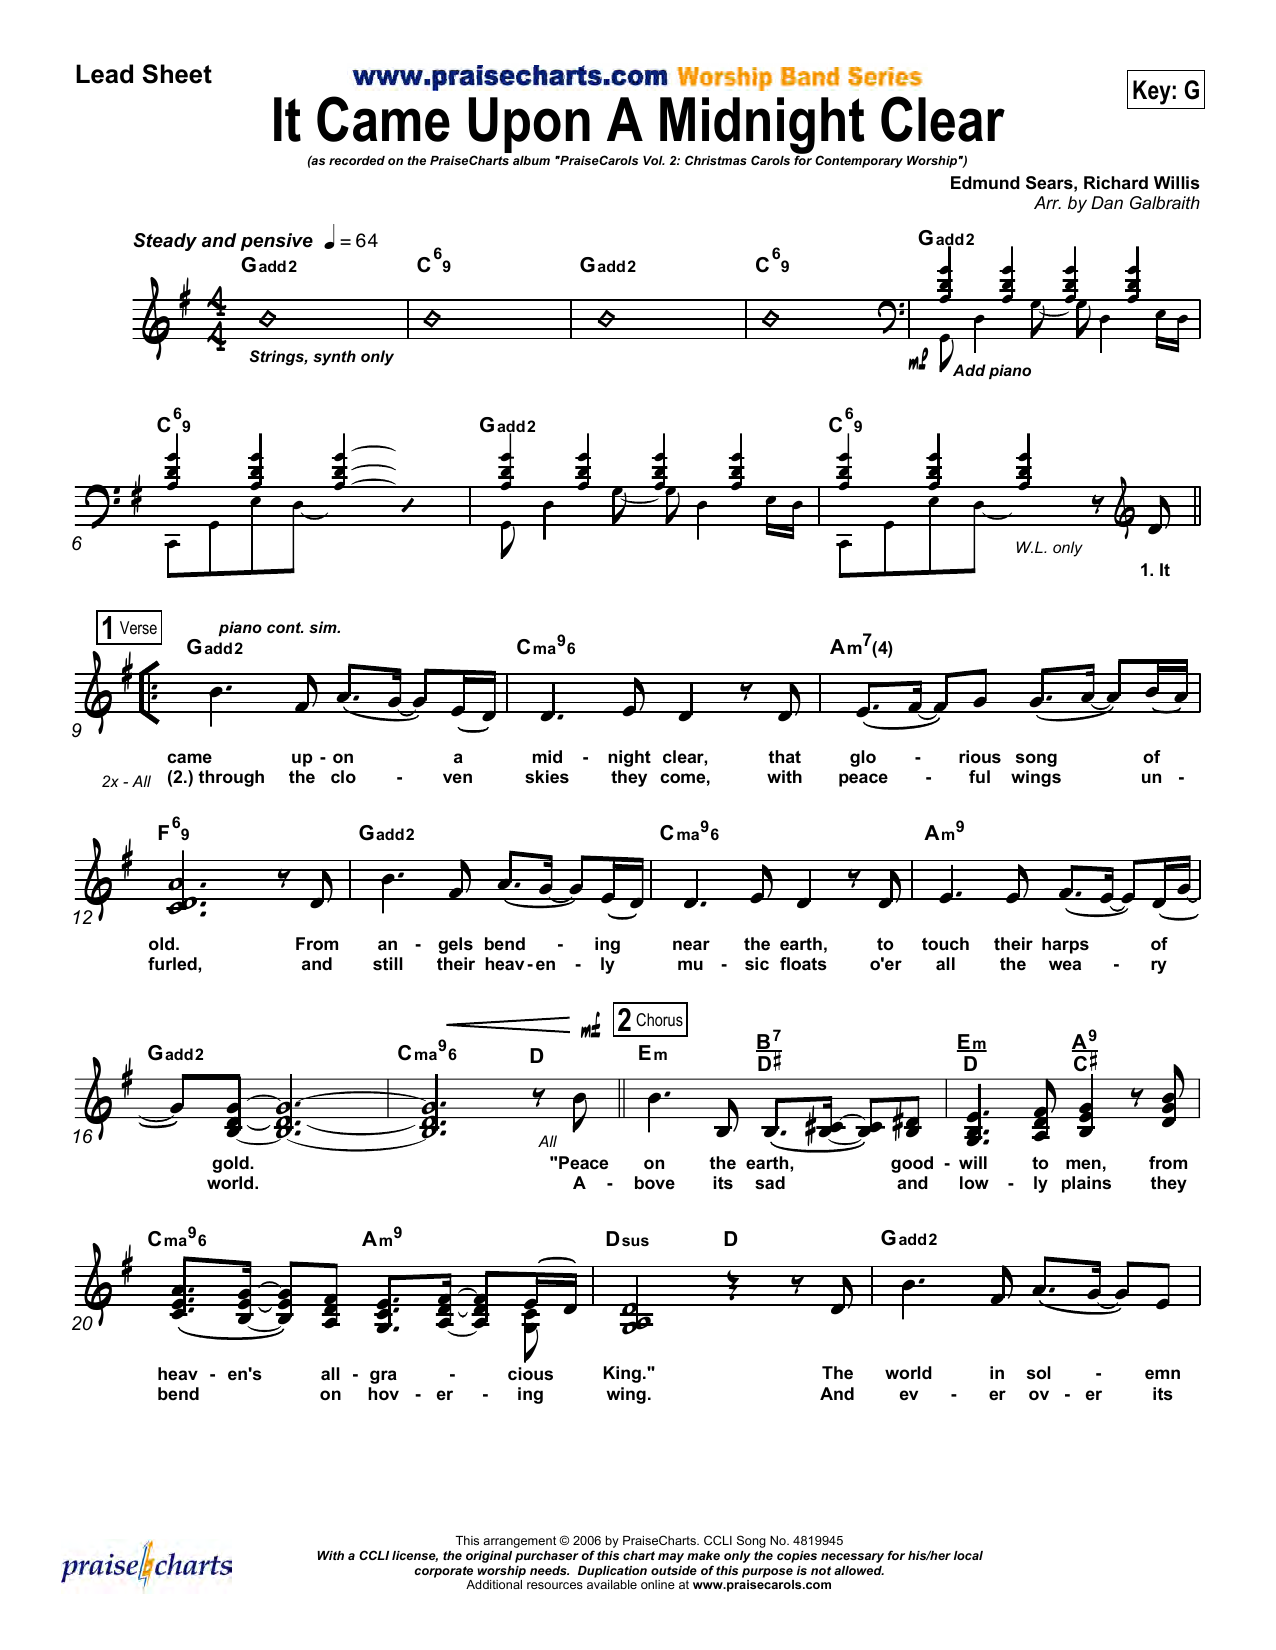 It Came upon a Midnight Clear   Orchestration Noten   Dan Galbraith    PraiseCharts